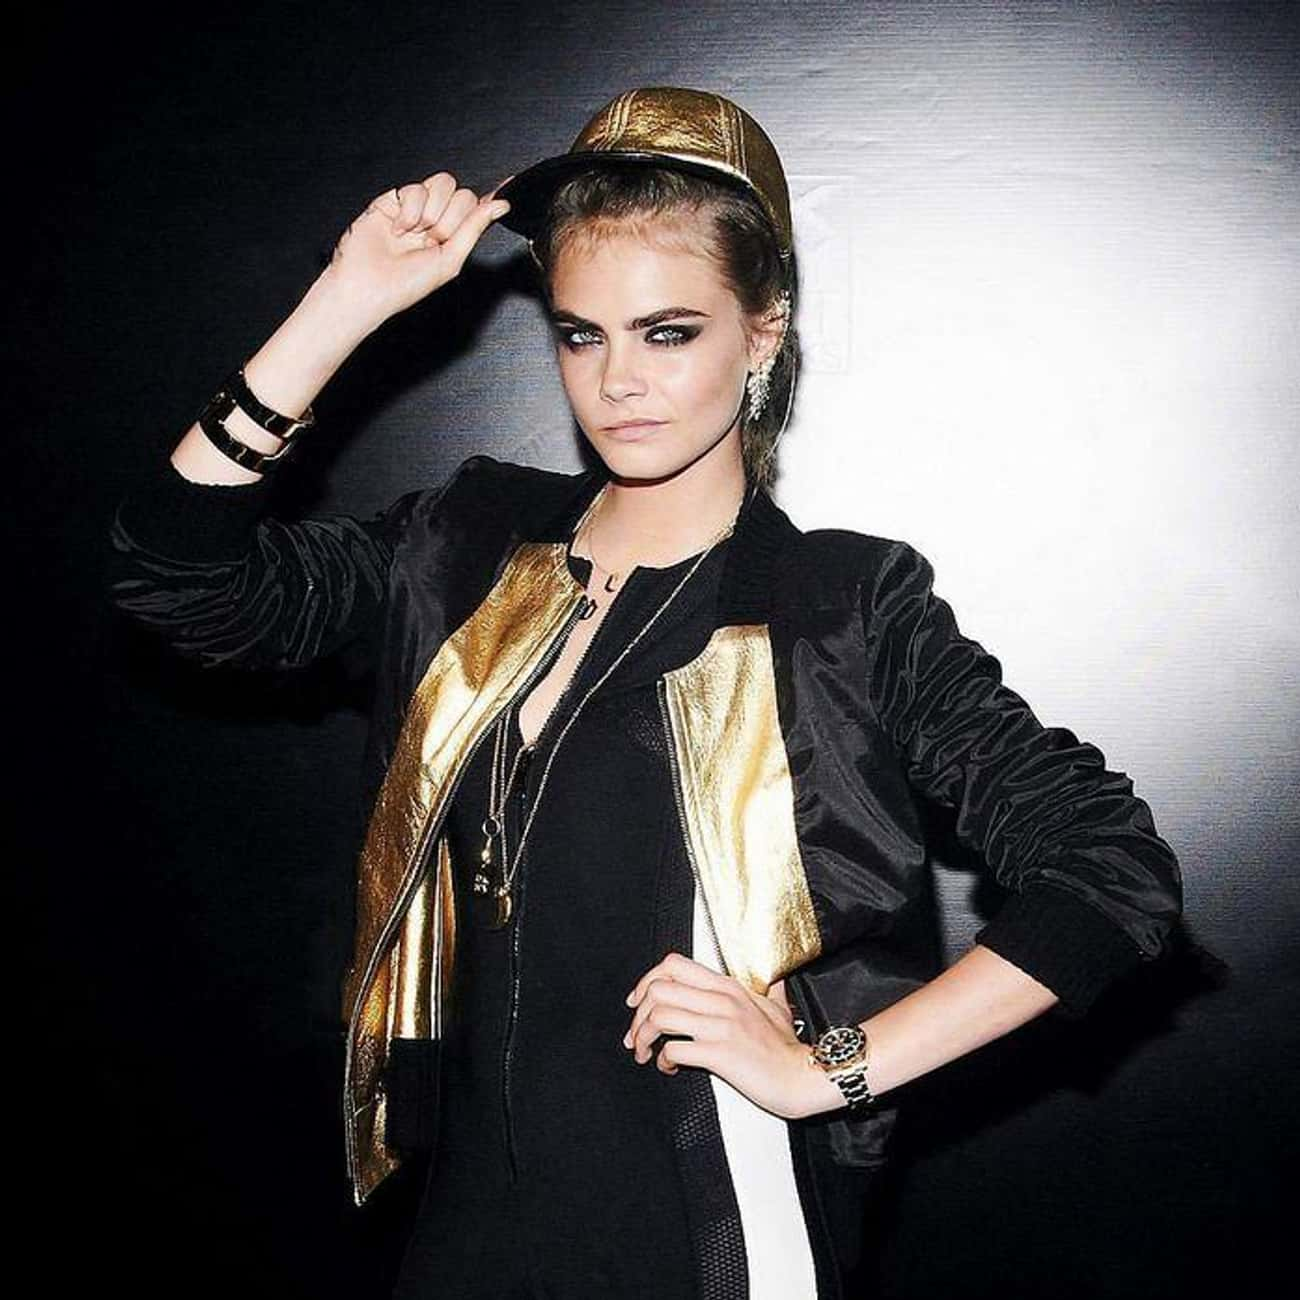 Cara Delevingne is listed (or ranked) 2 on the list Who Did These Eventually Famous Kids Grow Up To Be?